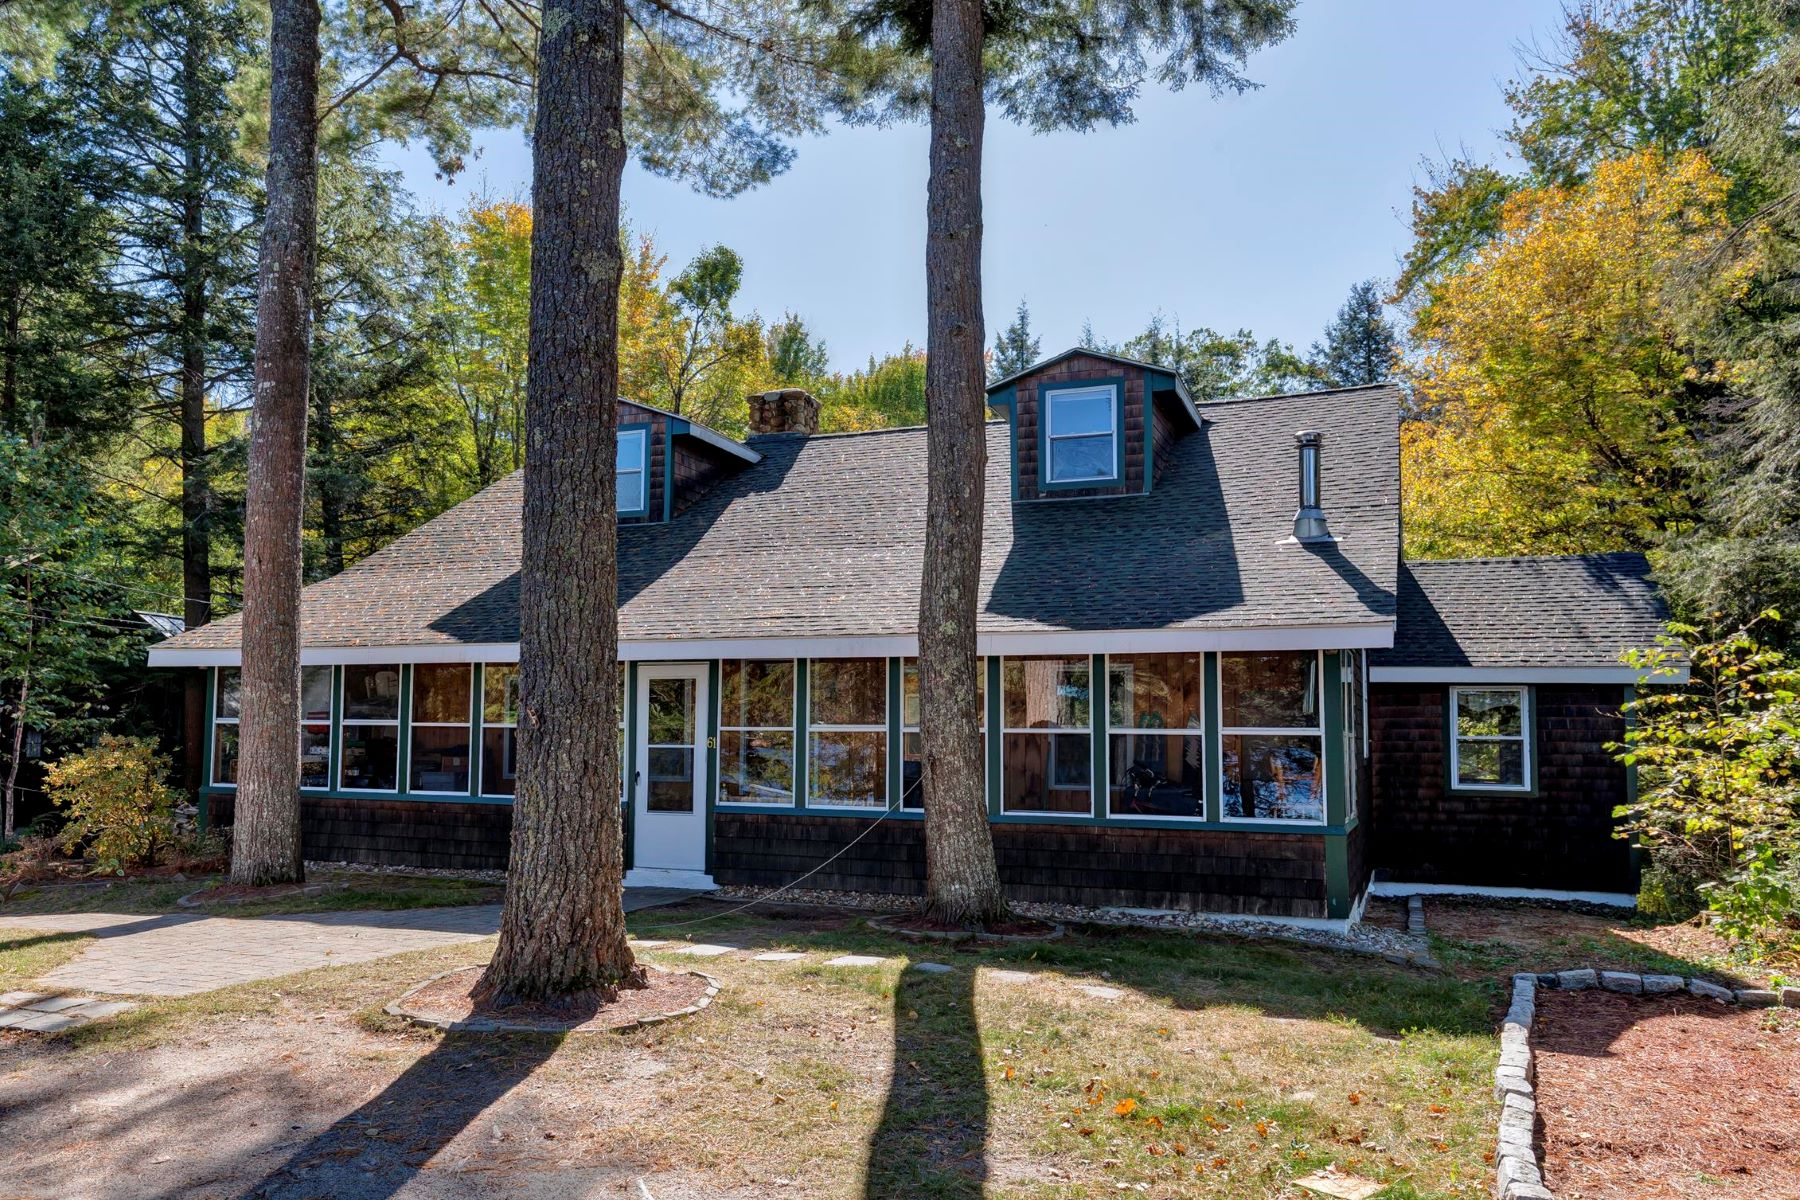 Single Family Home for Sale at 61 Penacook, Sutton Sutton, New Hampshire 03260 United States